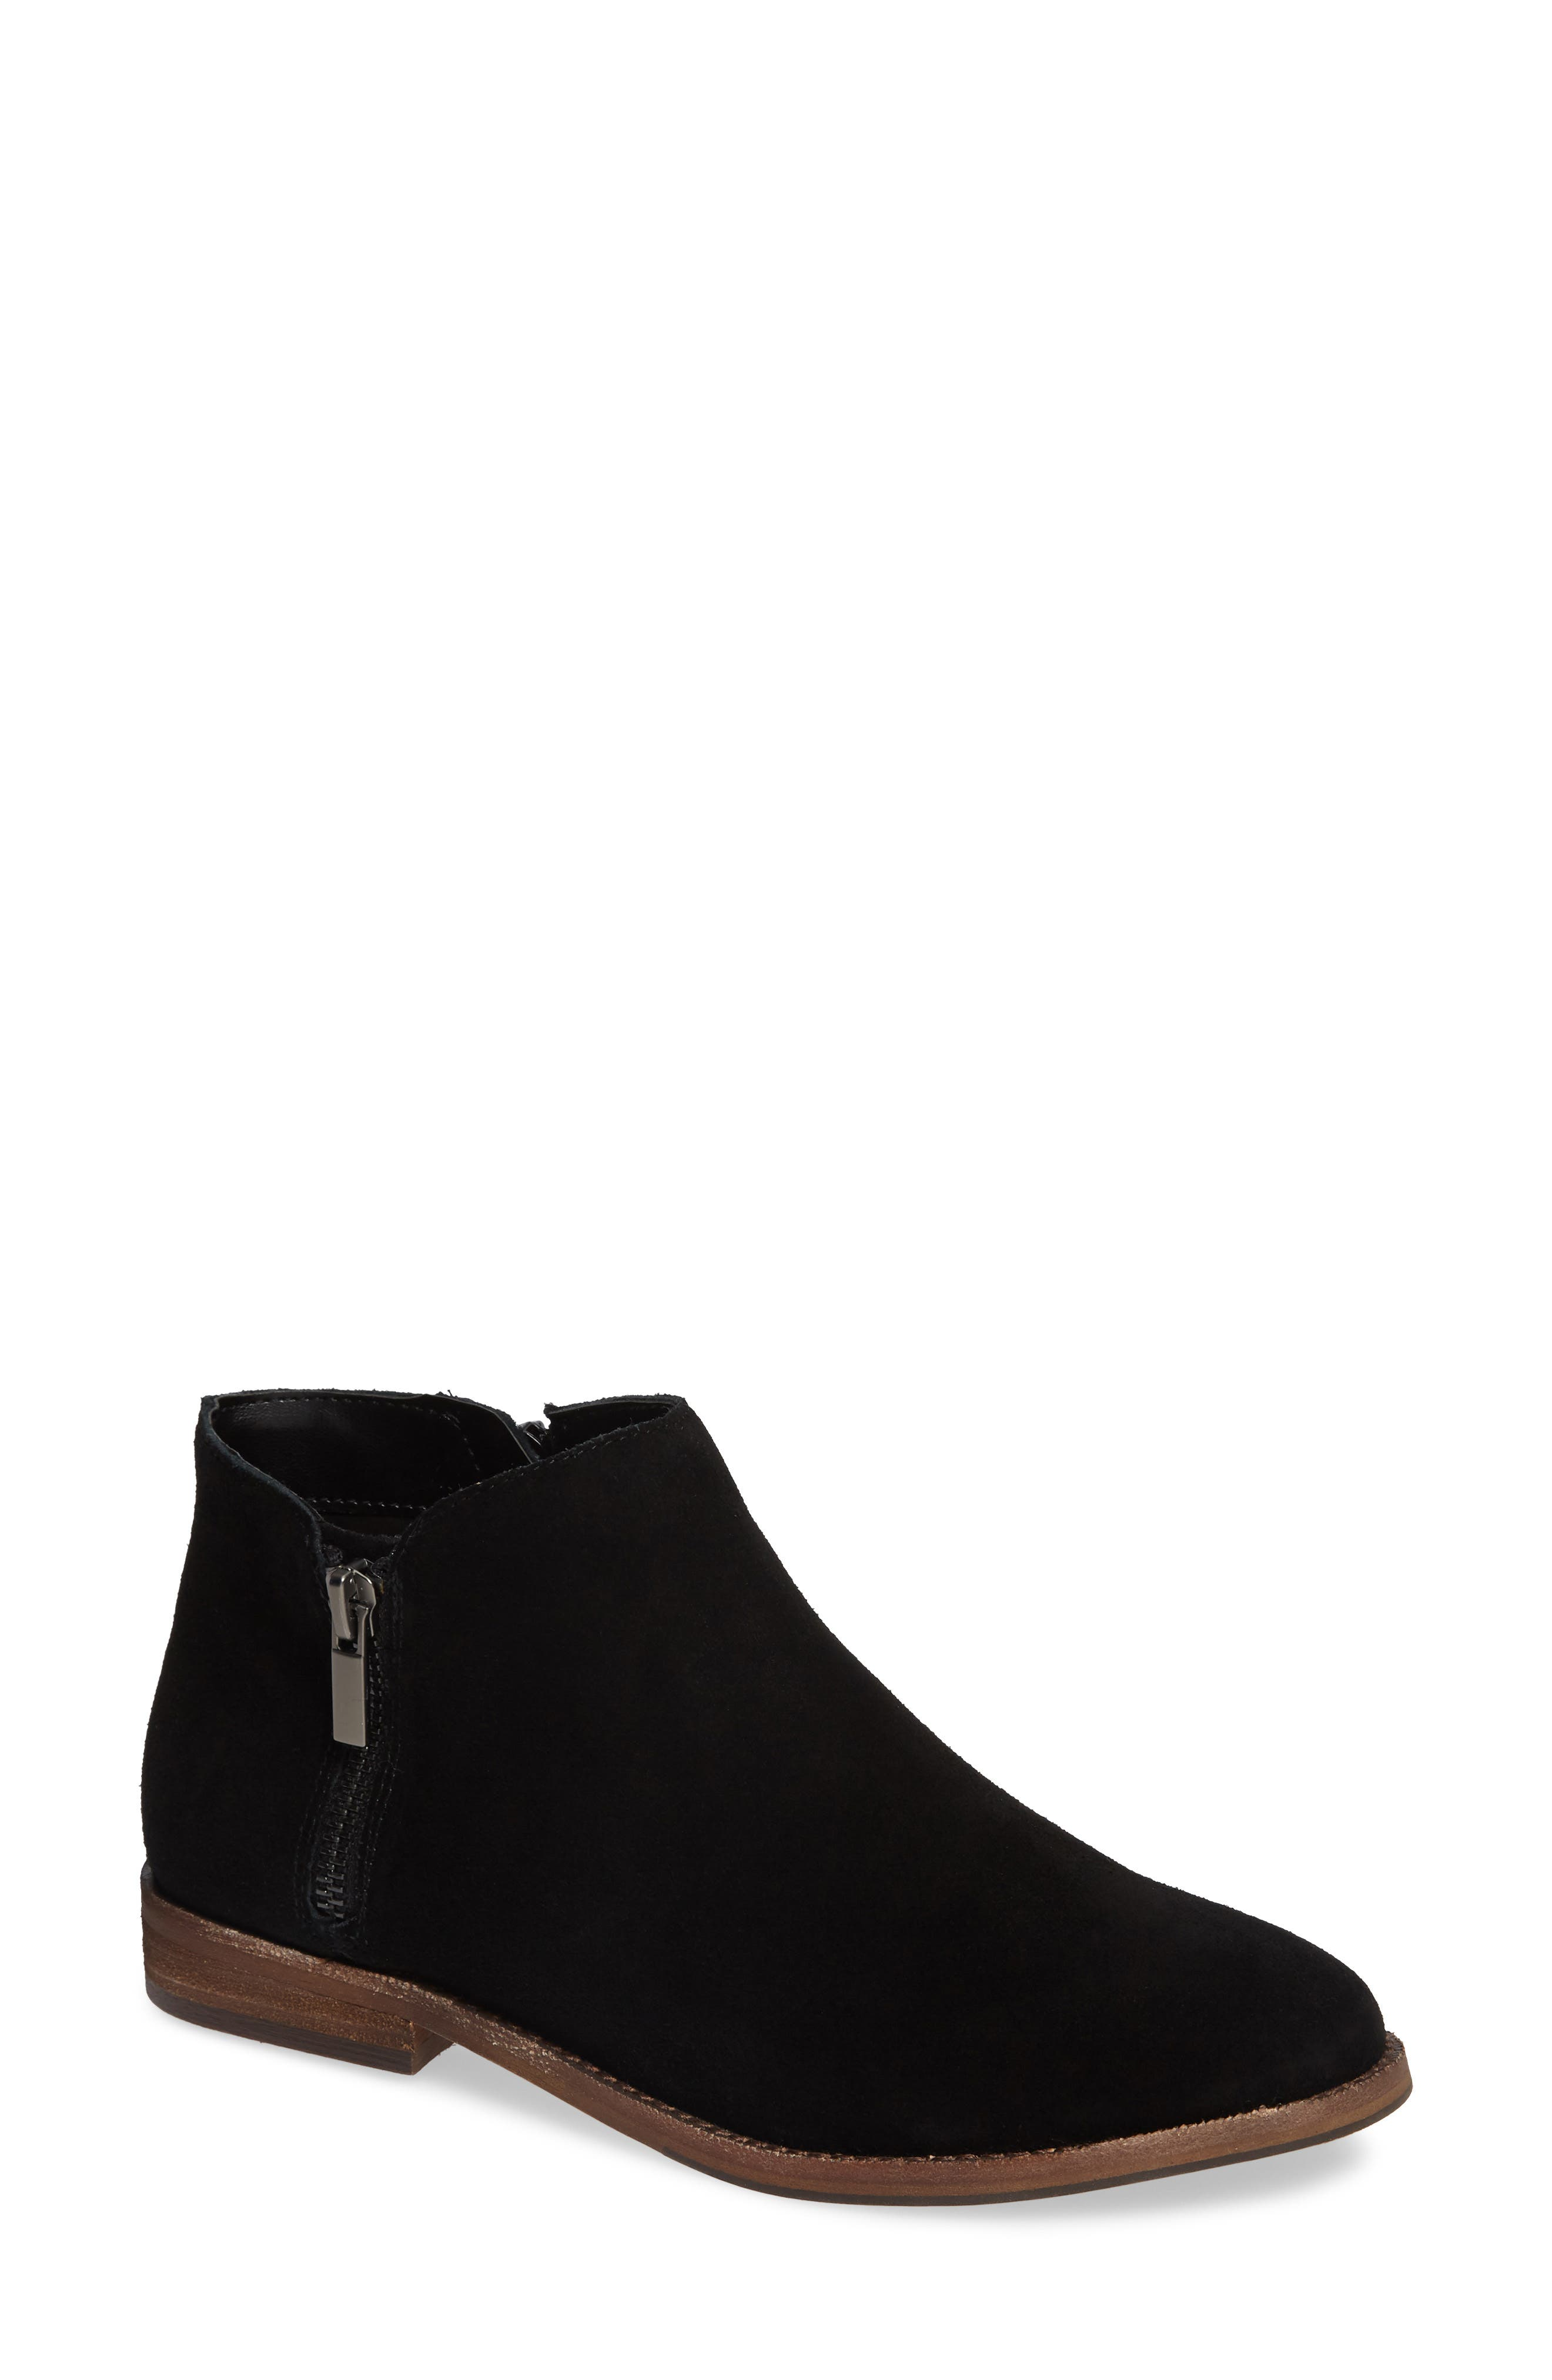 Bevlyn Bootie,                             Main thumbnail 1, color,                             BLACK SUEDE